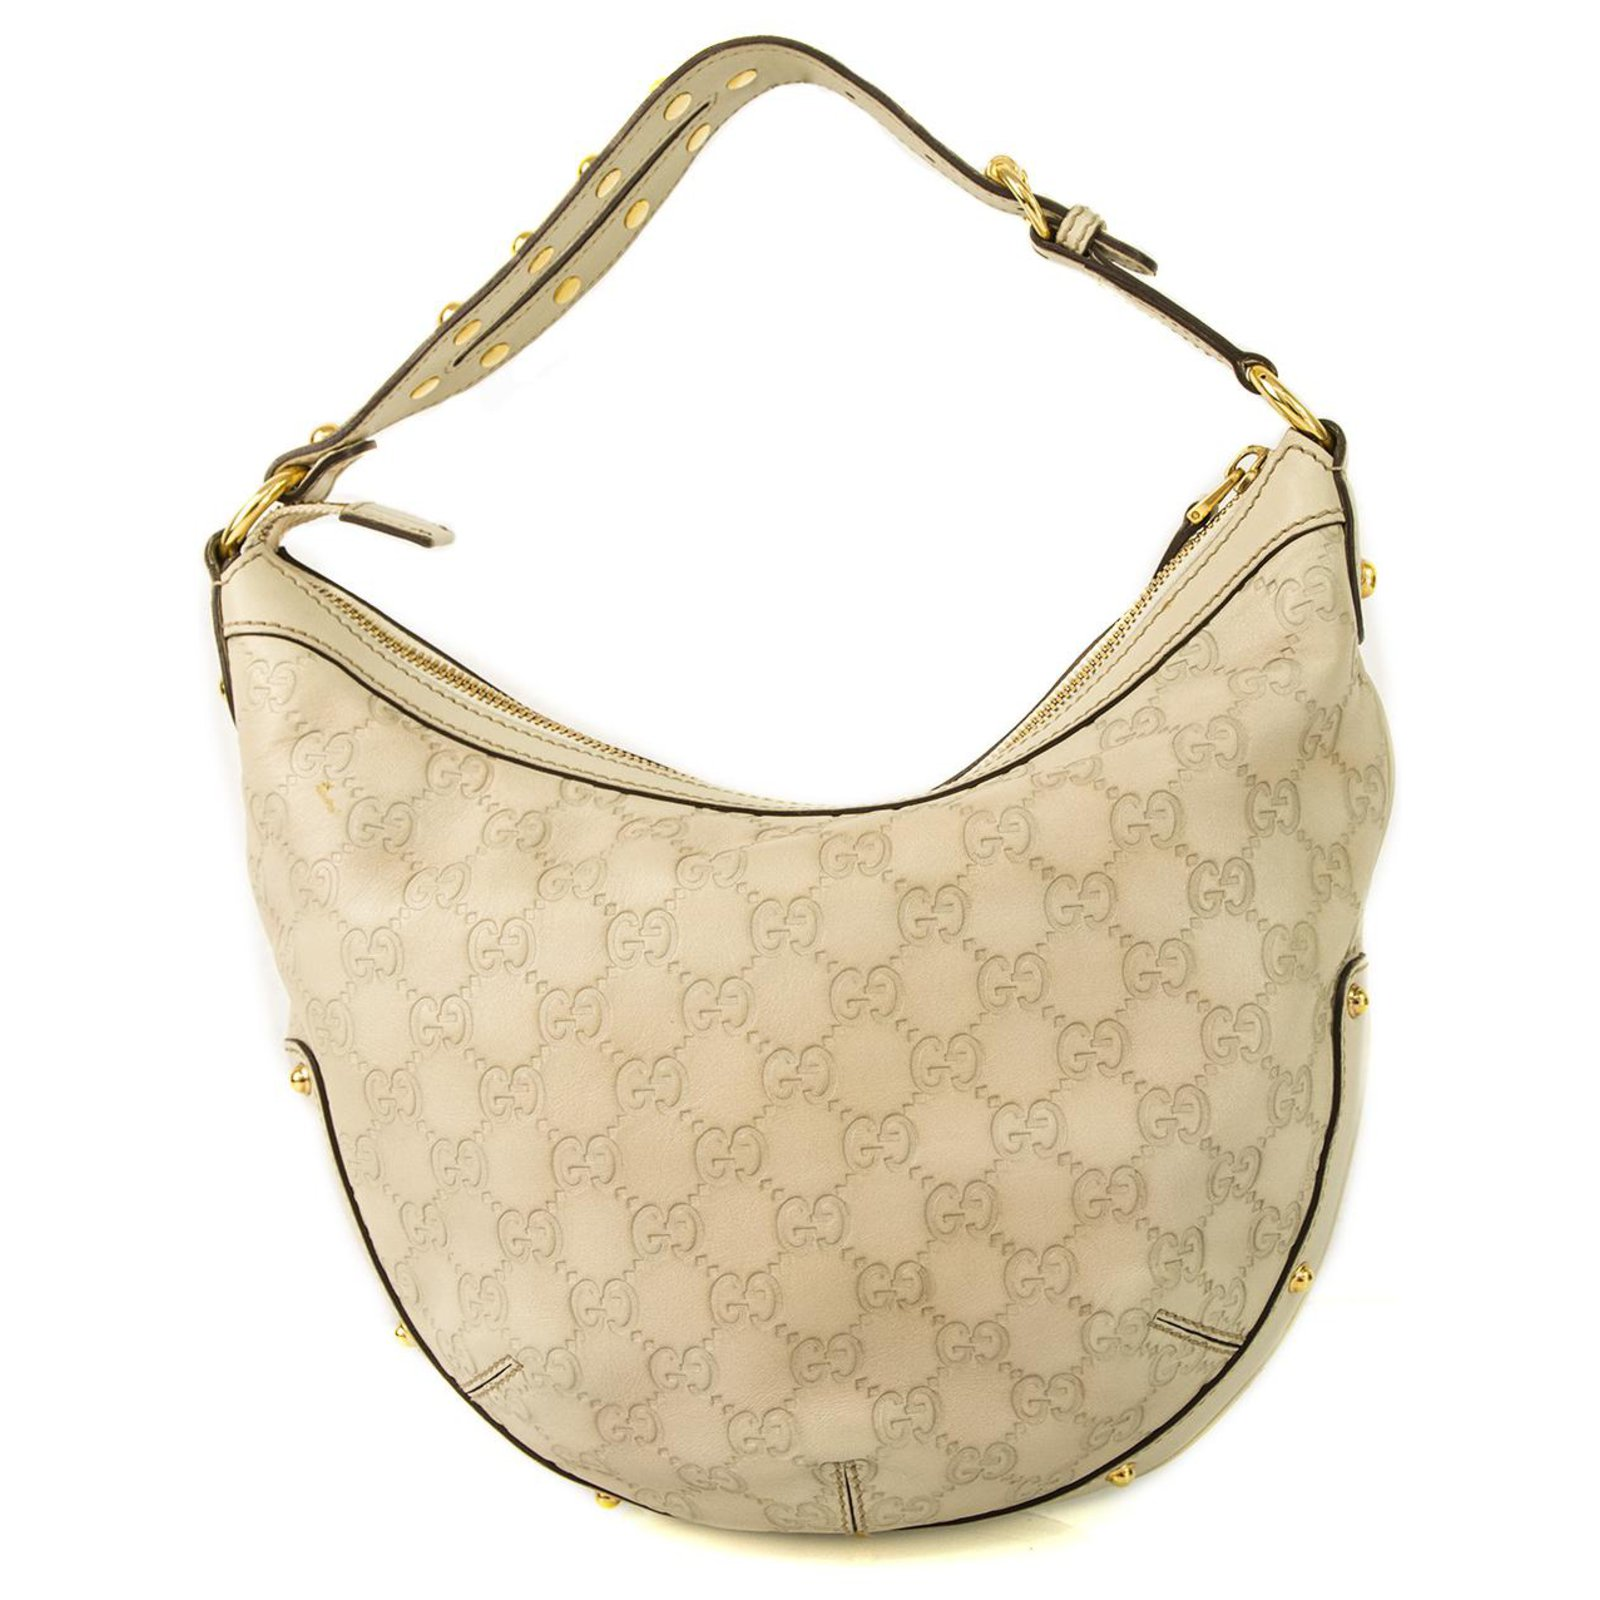 b939259a31cc Gucci Gucci Off White Guccissima Medium Shoulder Hobo HandBag Handbags  Leather White ref.123448